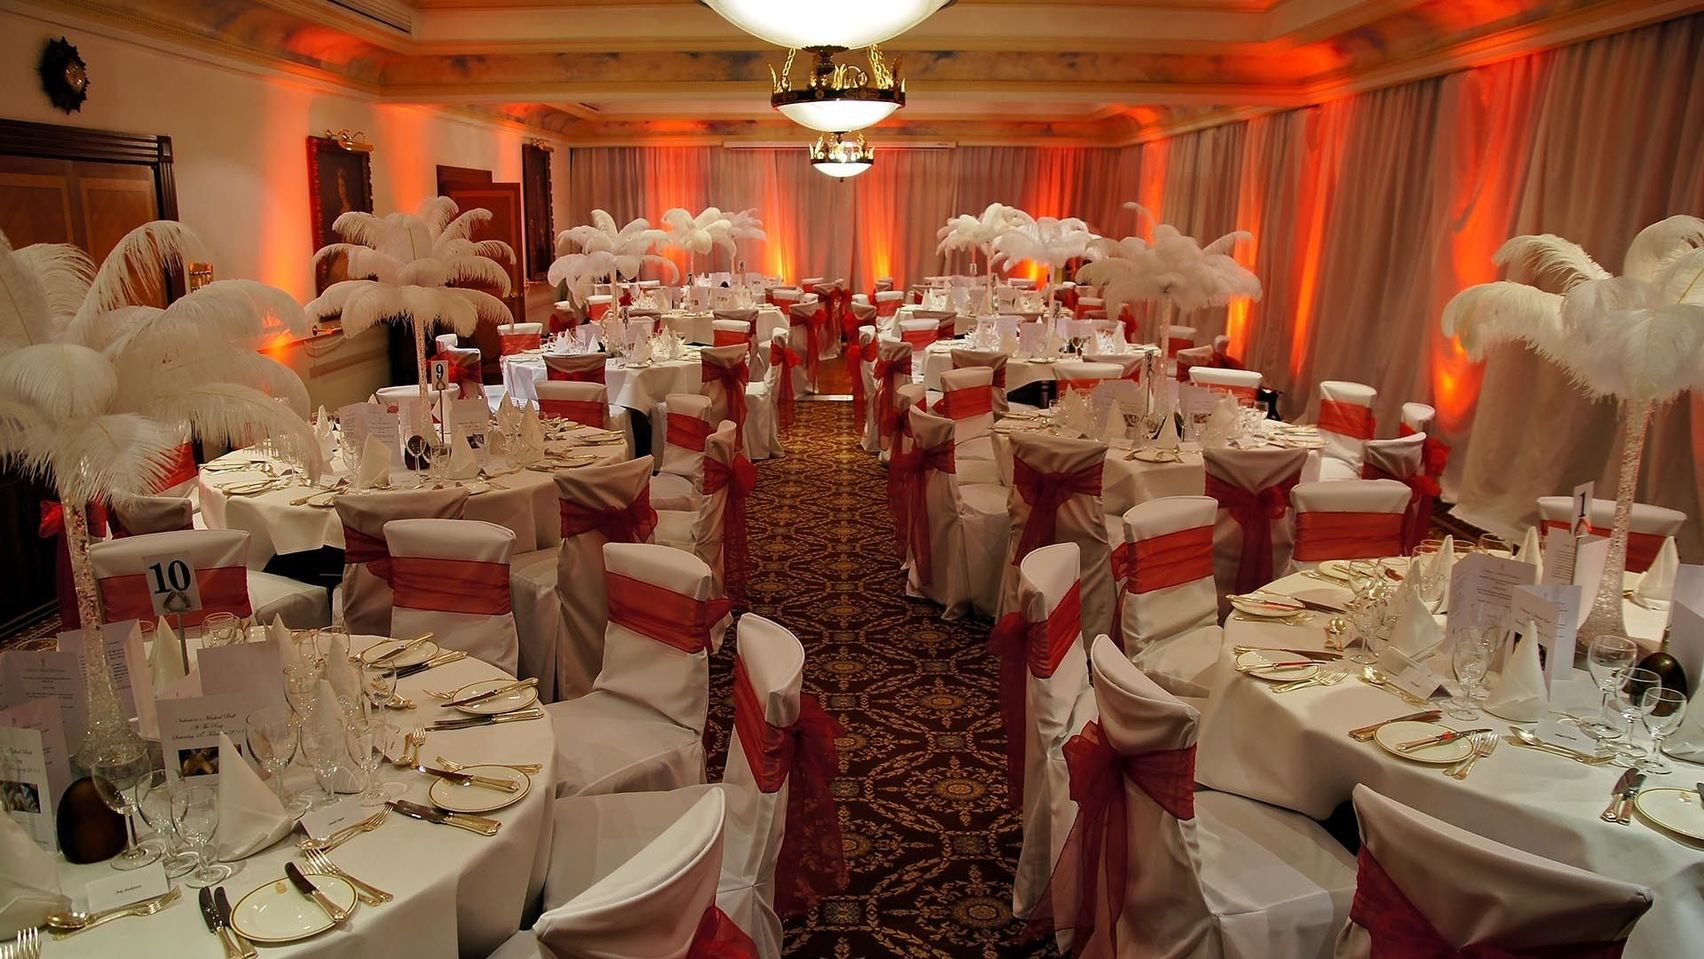 The Pall Mall Room, The Army & Navy Club